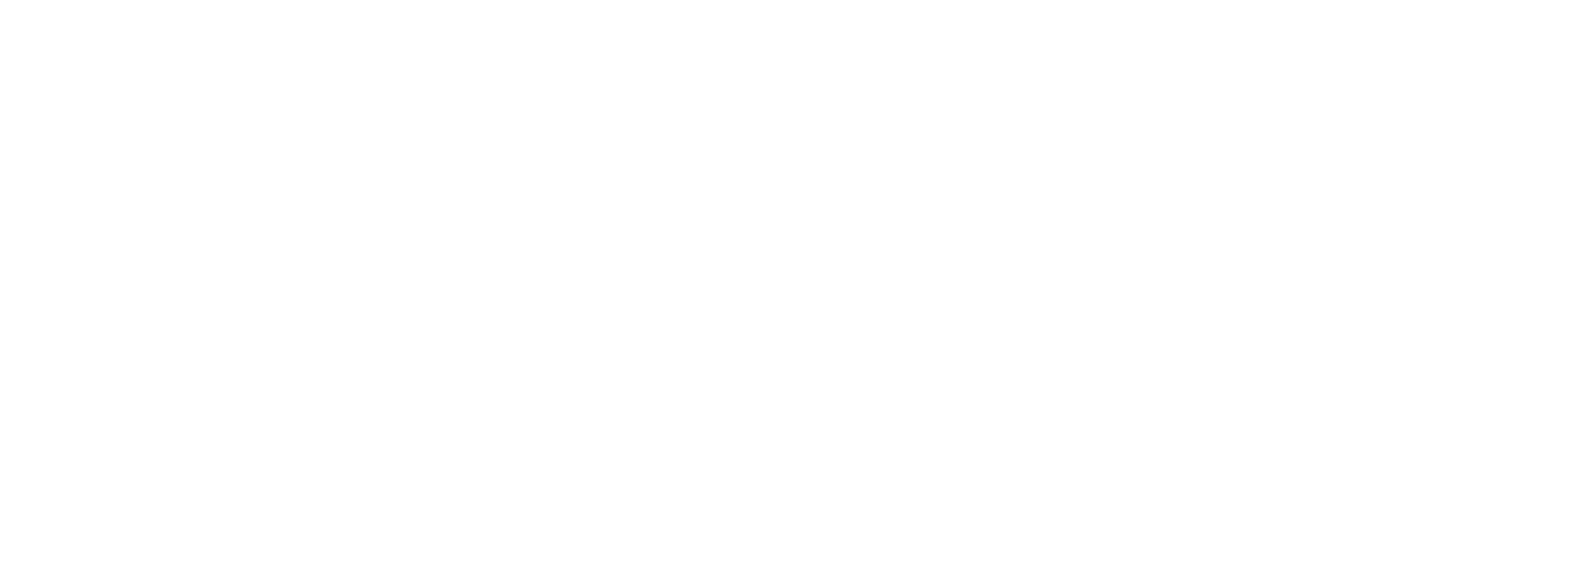 alexander von humboldt institute for internet and society hiig the center s website